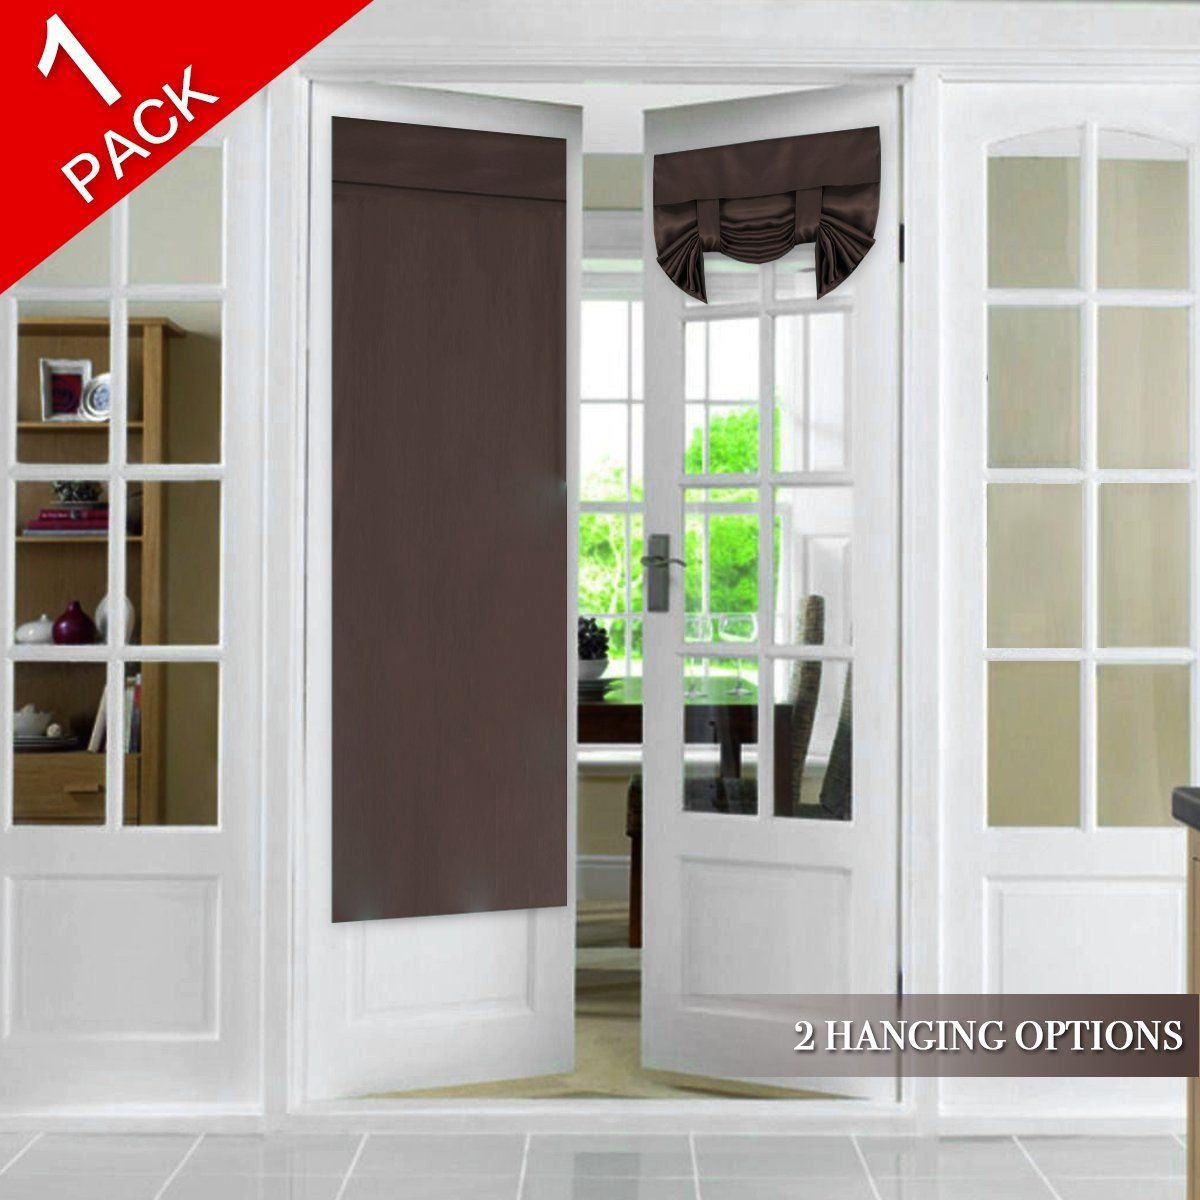 Tricia Window Door Curtain French Door Curtain Panel Rod Pocket Blackout Drapes For Patio Door Gla In 2020 Door Curtains French Door Curtains Brown Blackout Curtains